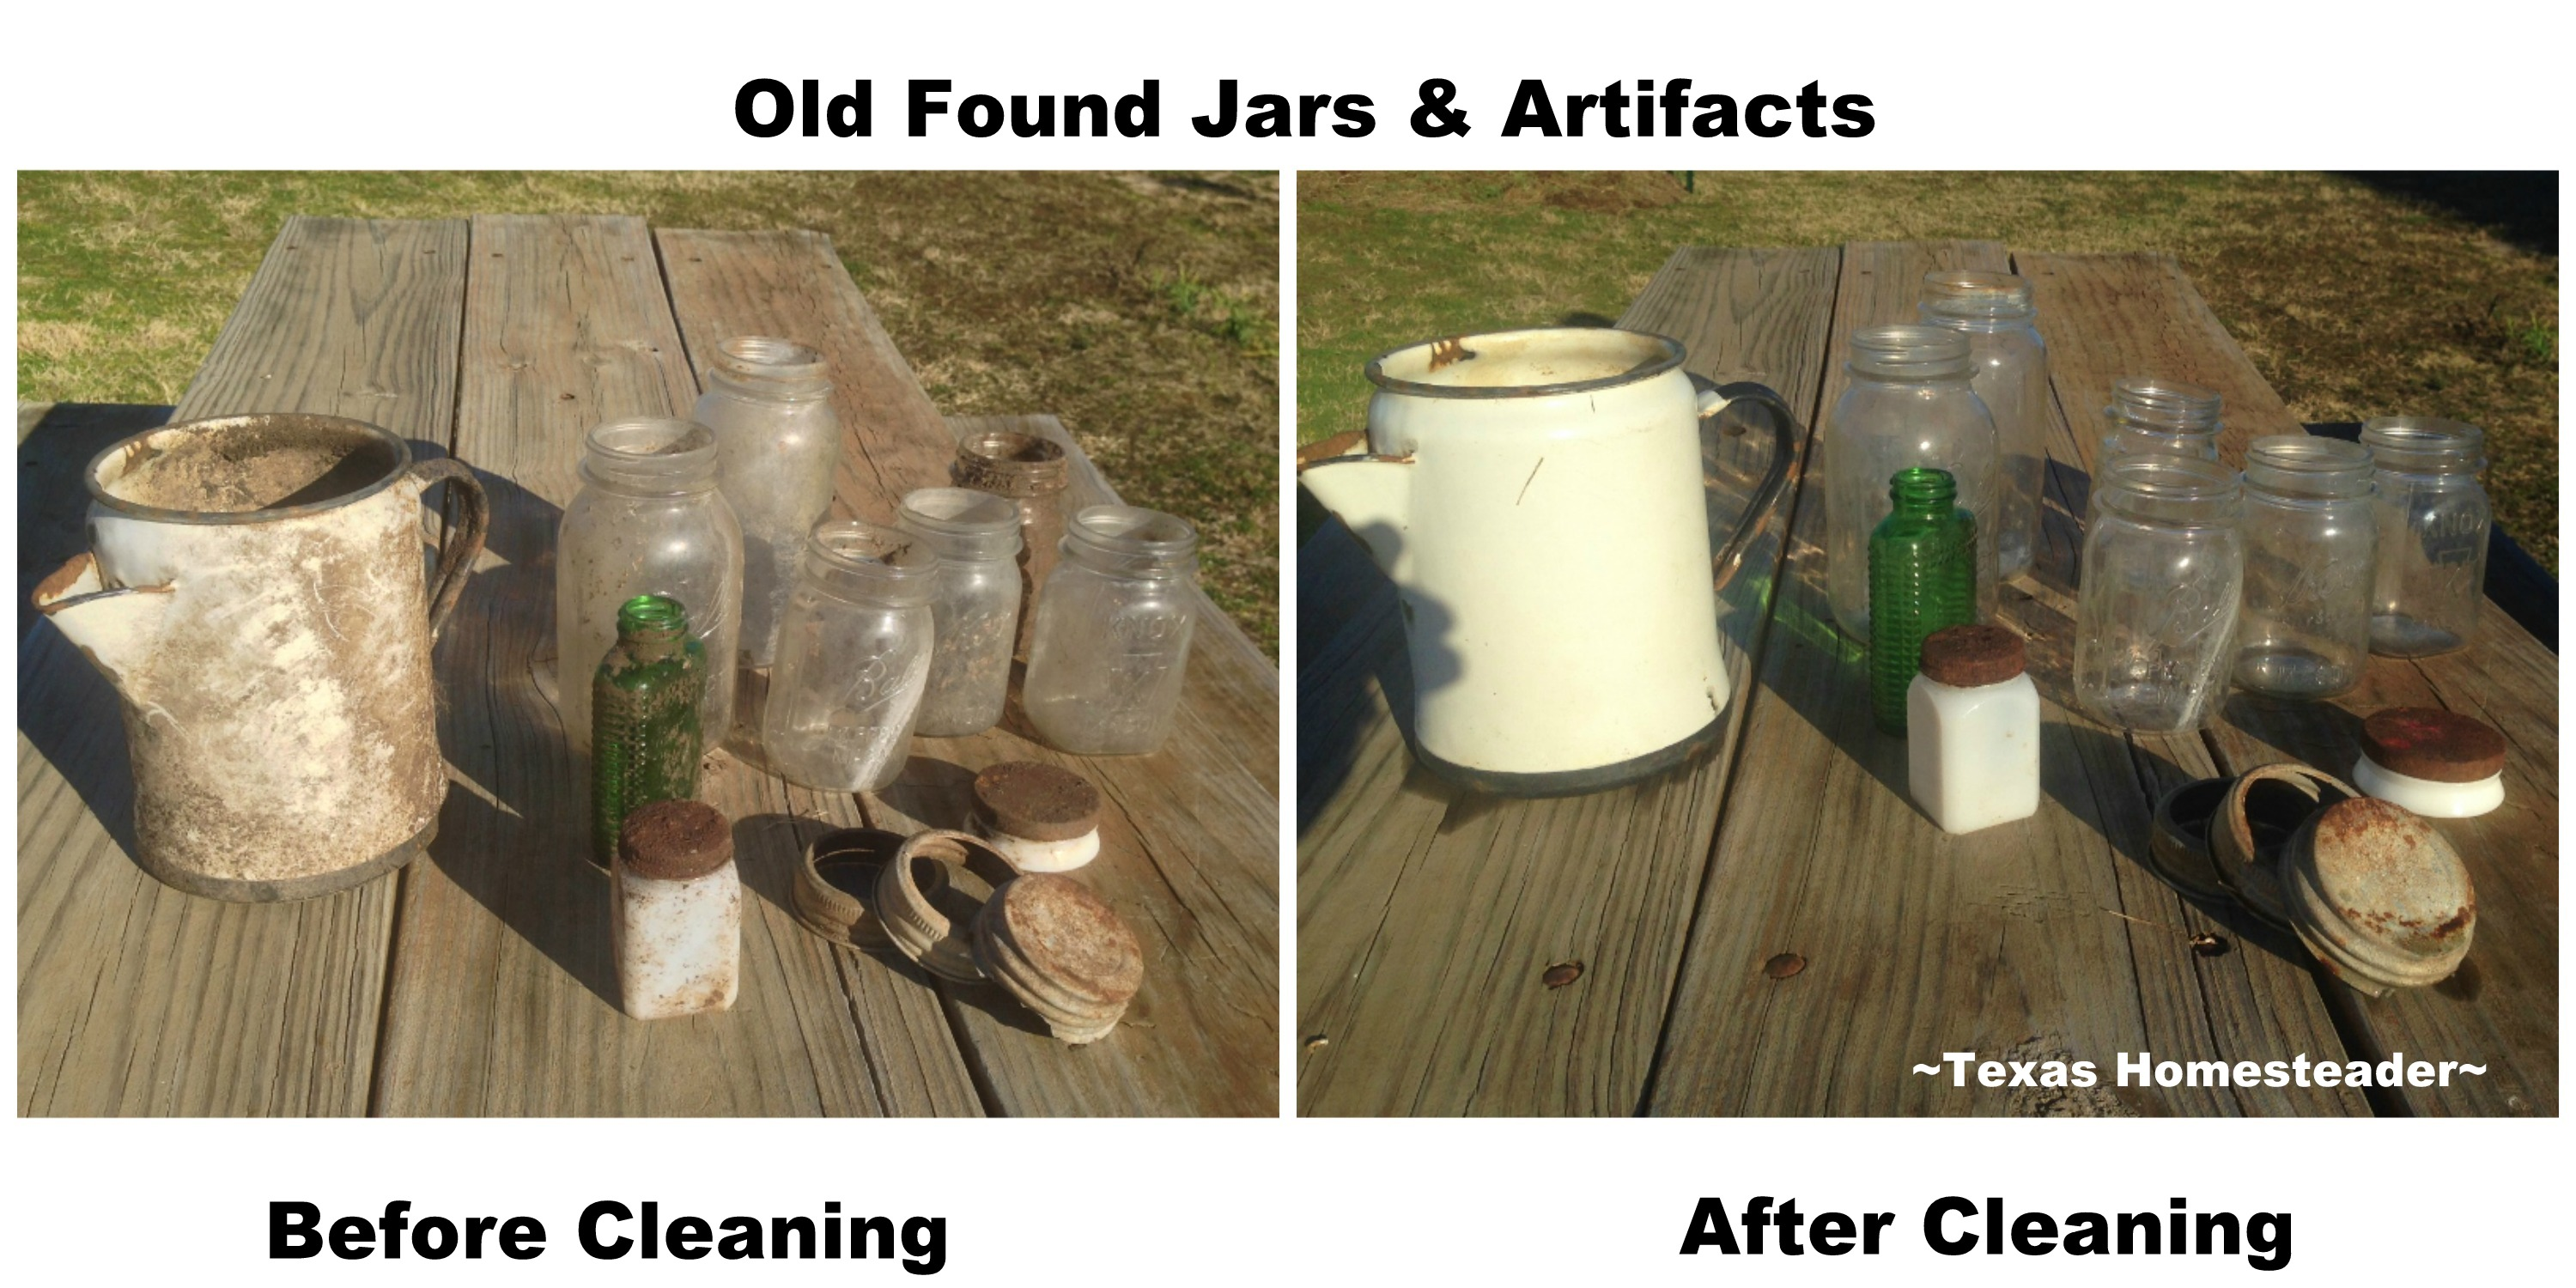 Old Found Jars and artifacts. WHISPERS OF PAST LIVES: The previous homesteaders home burned back in the 1950's, but I can read their stories by what they left behind #TexasHomesteader